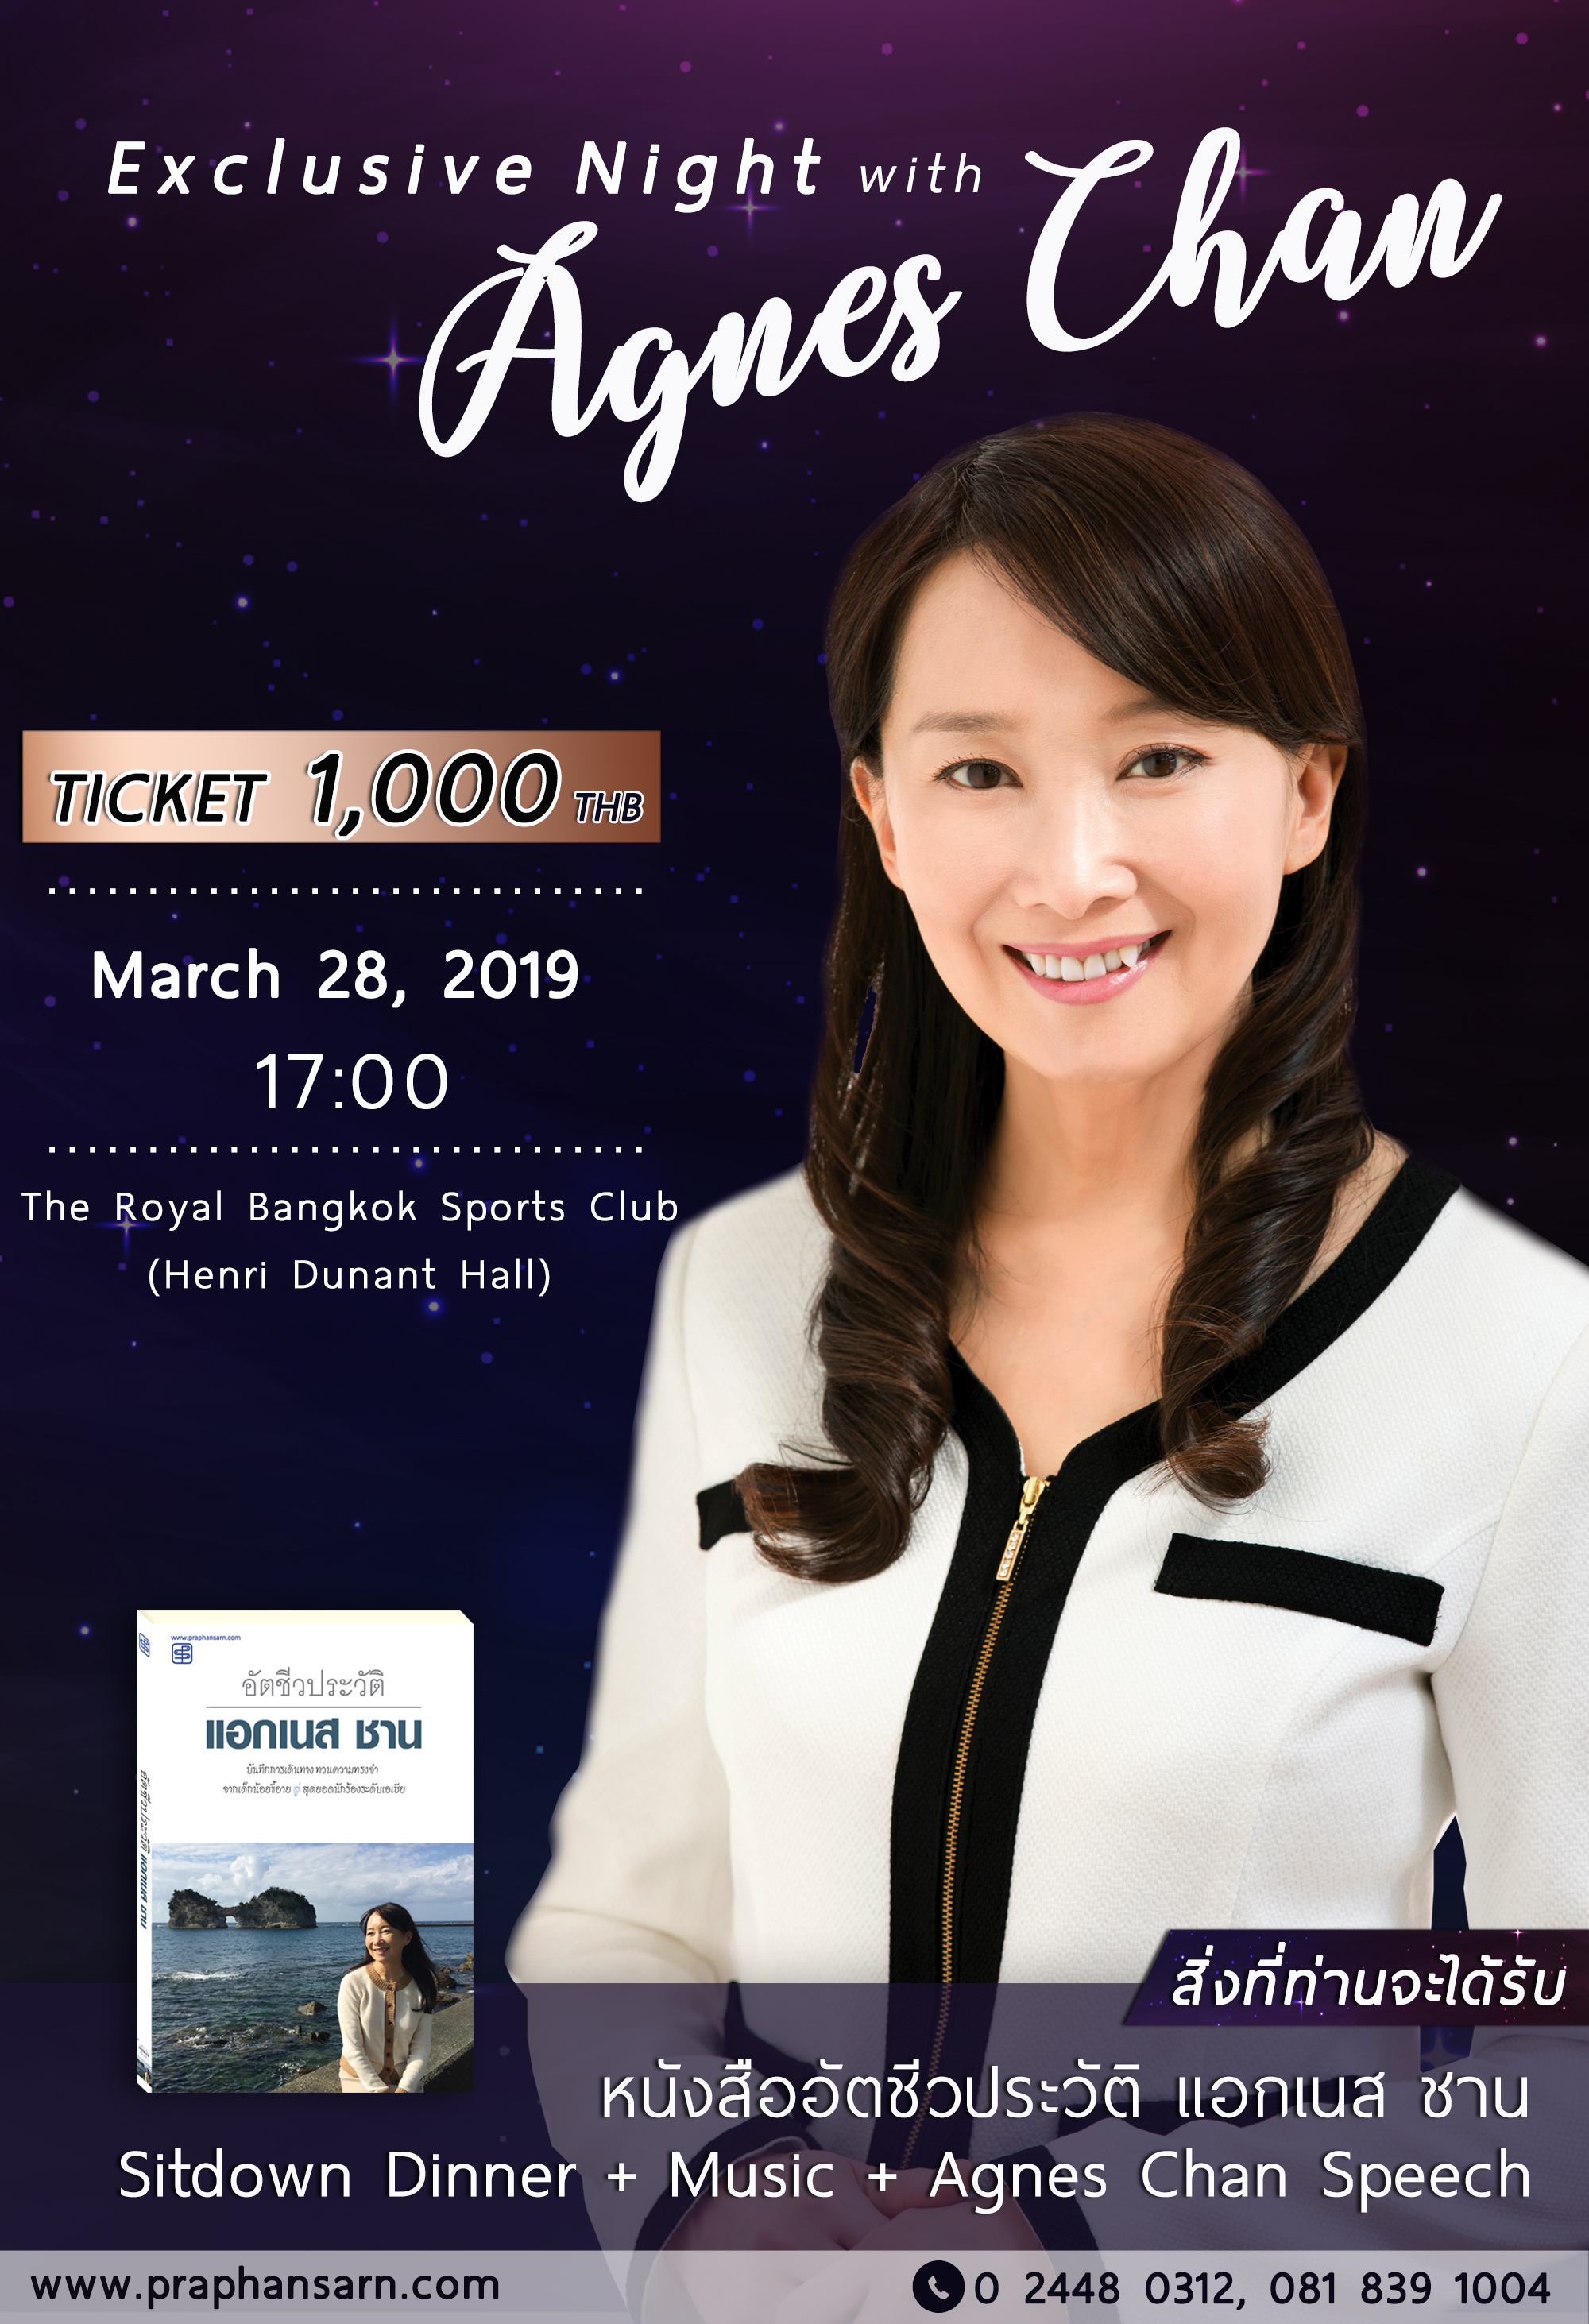 Exclusive Night with Agnes Chan